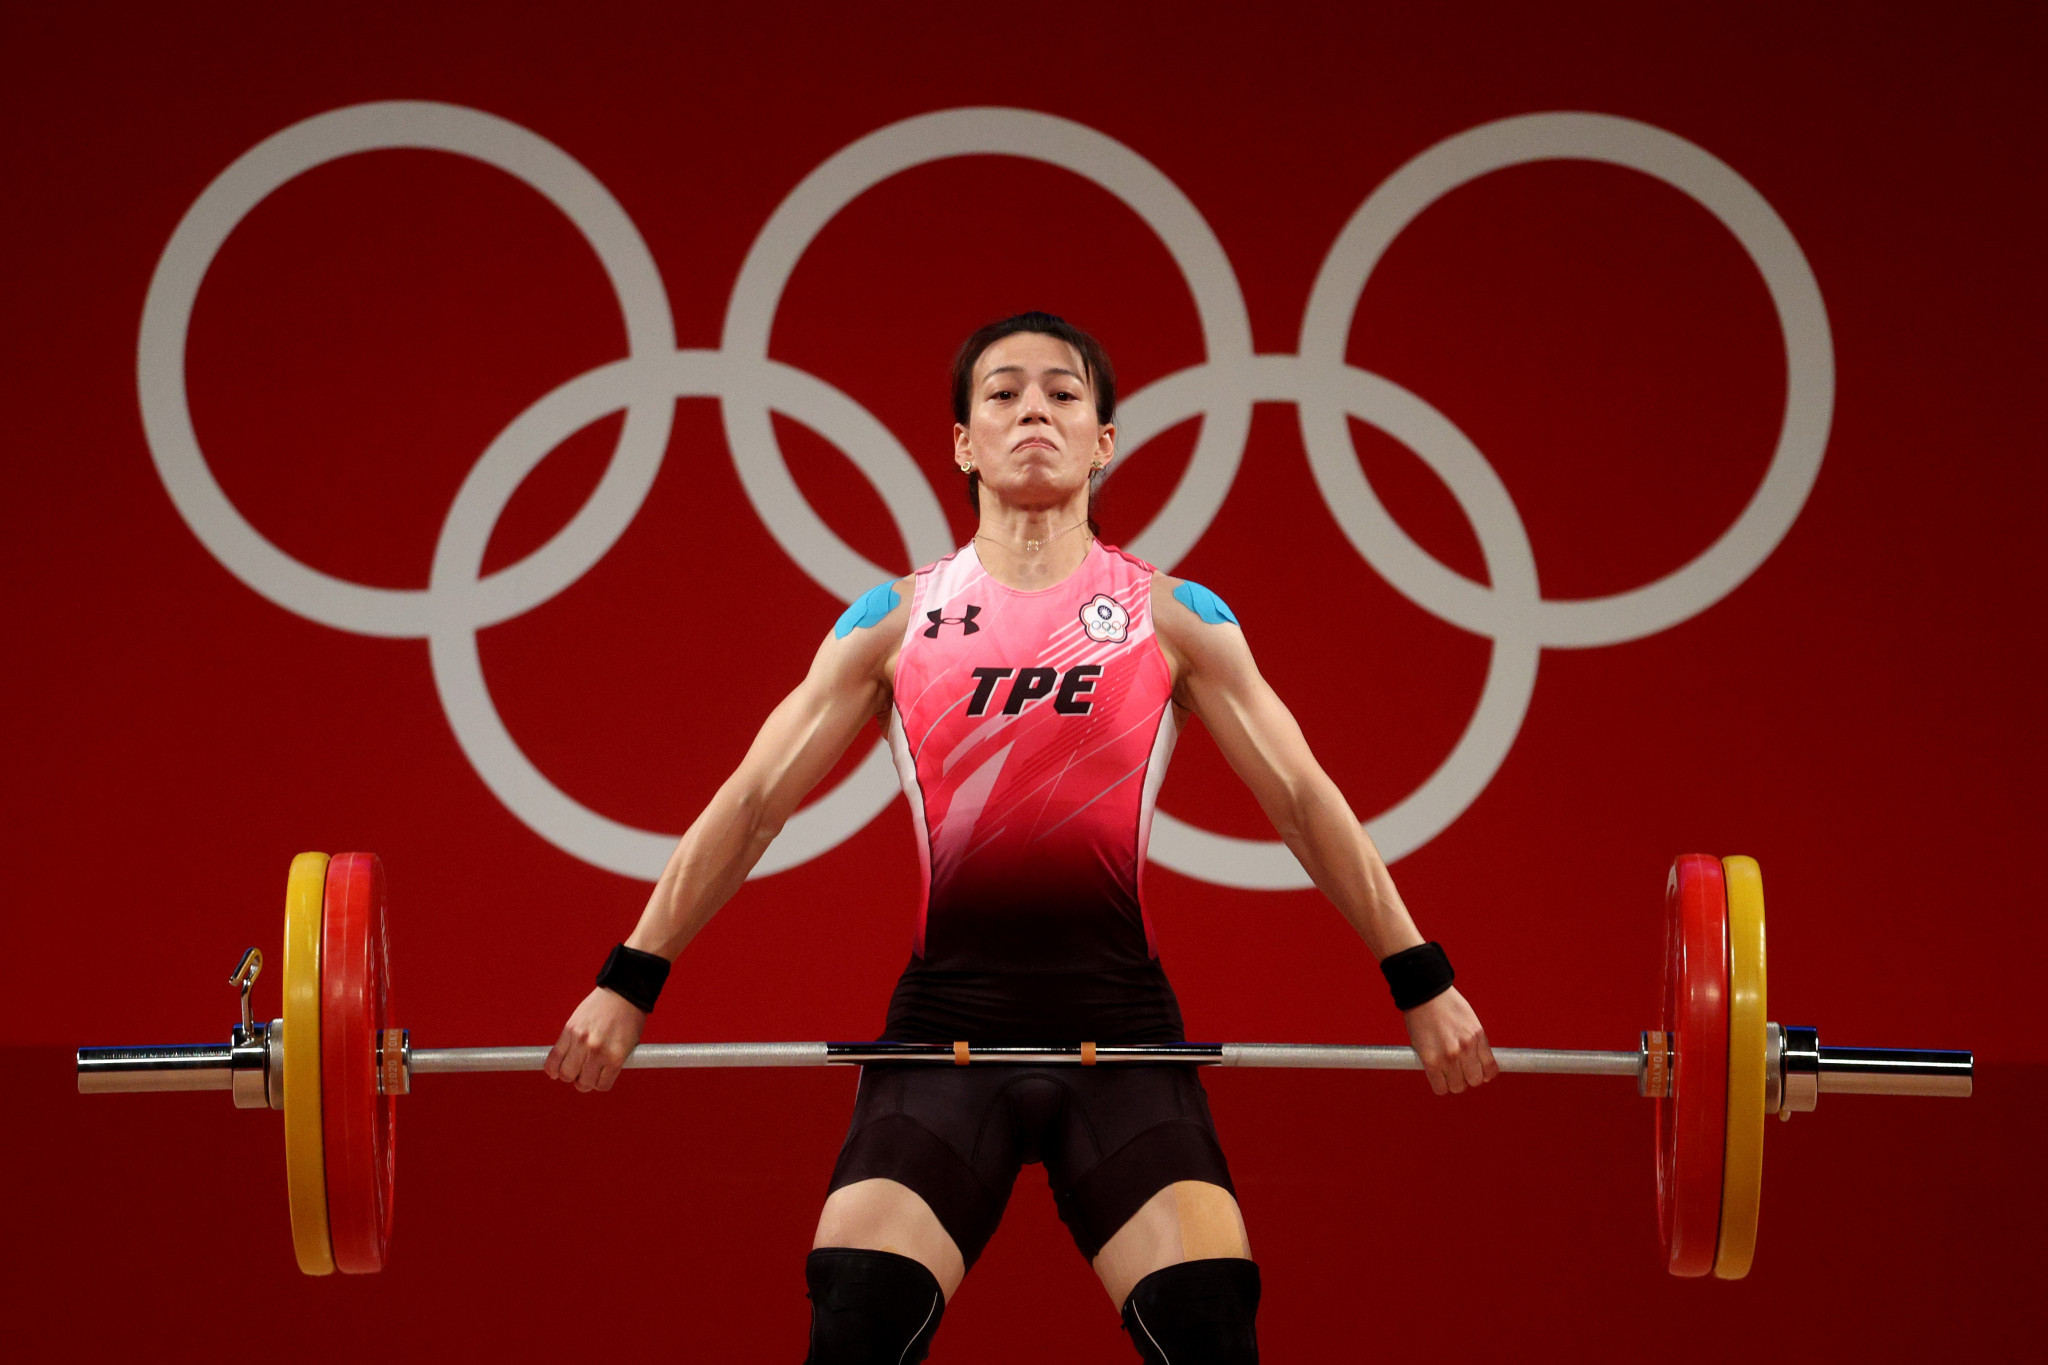 Kuo Hsing-chun donates Olympic prize money to local services